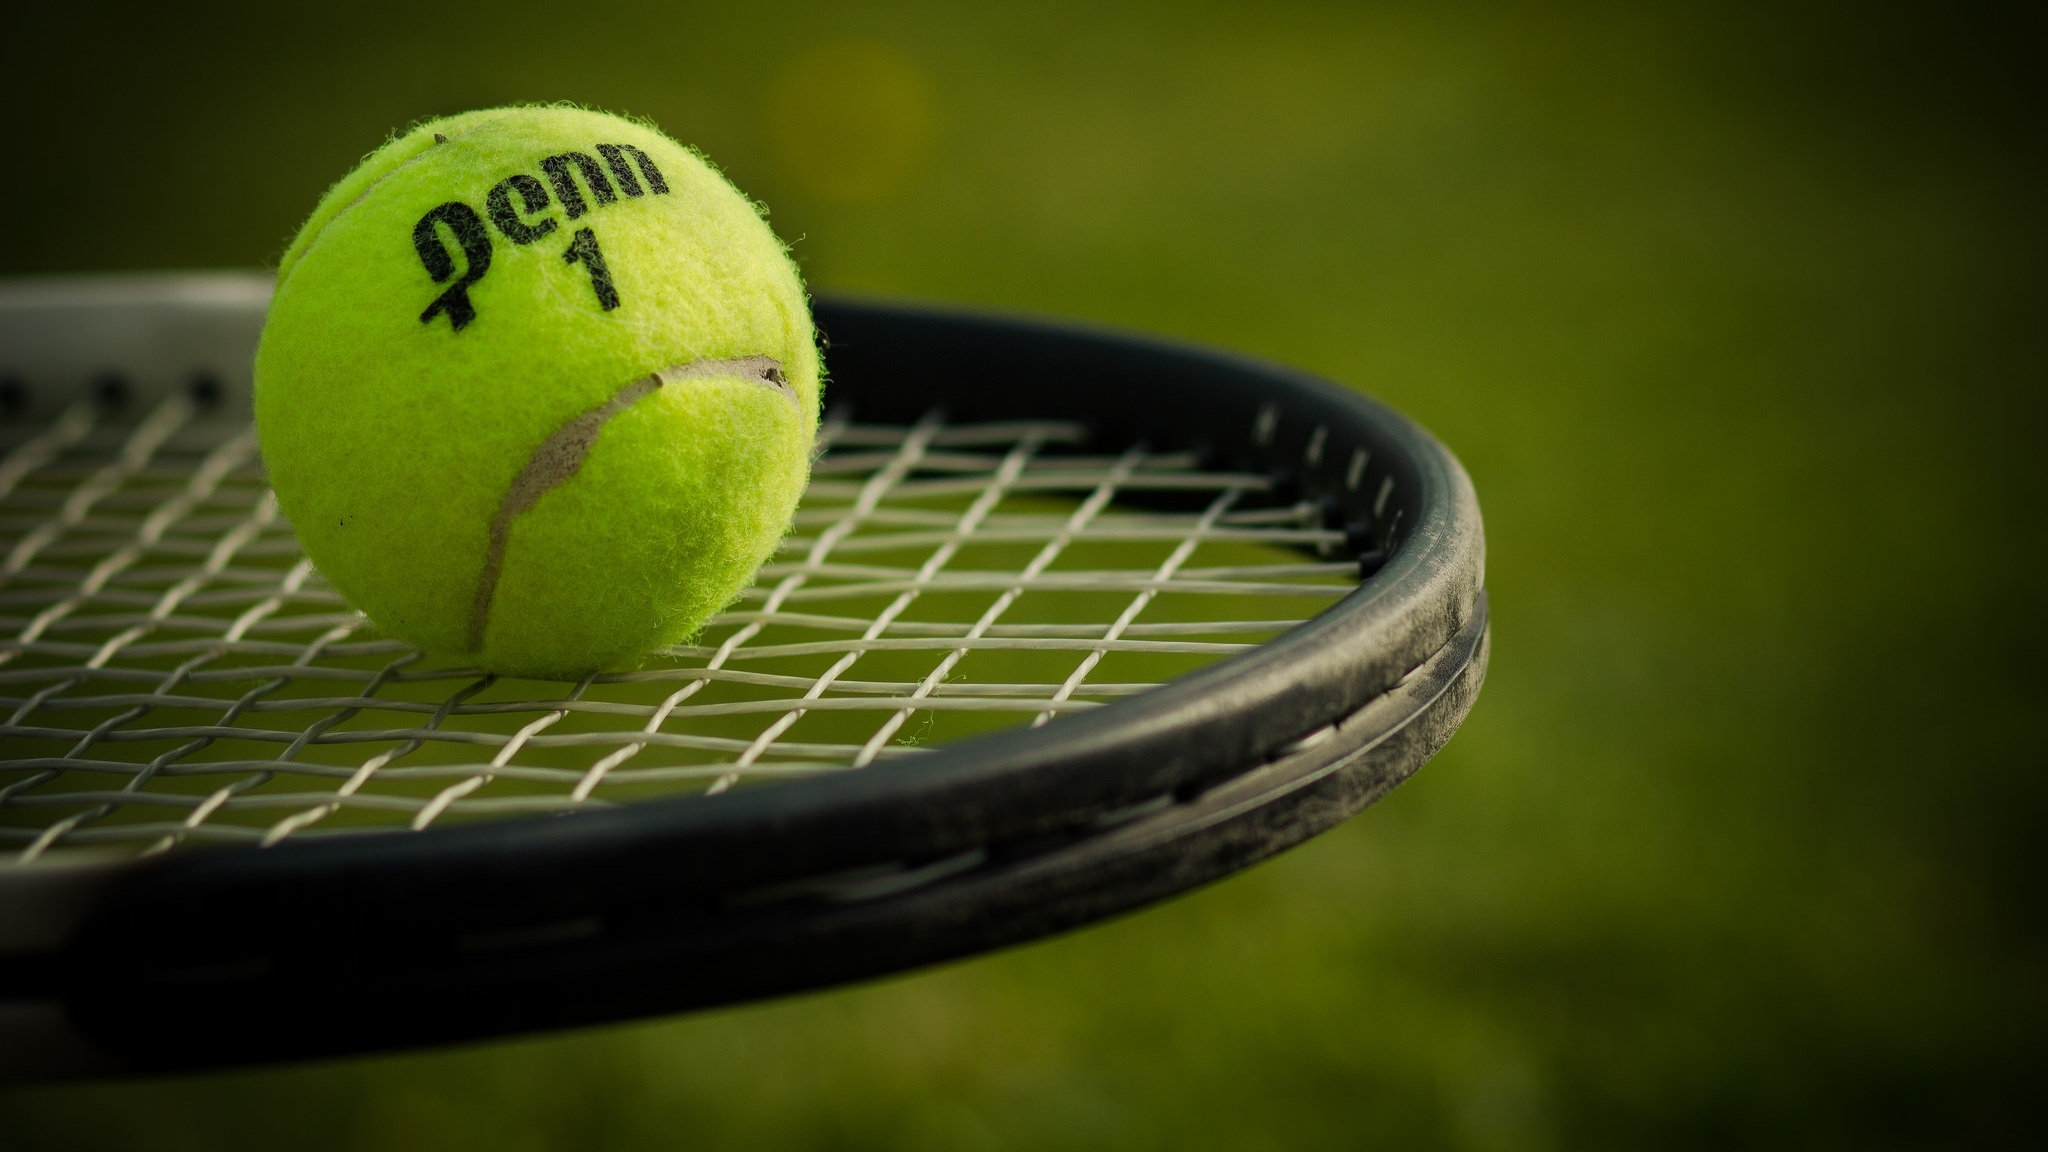 Tennis Ball And Racket Sports